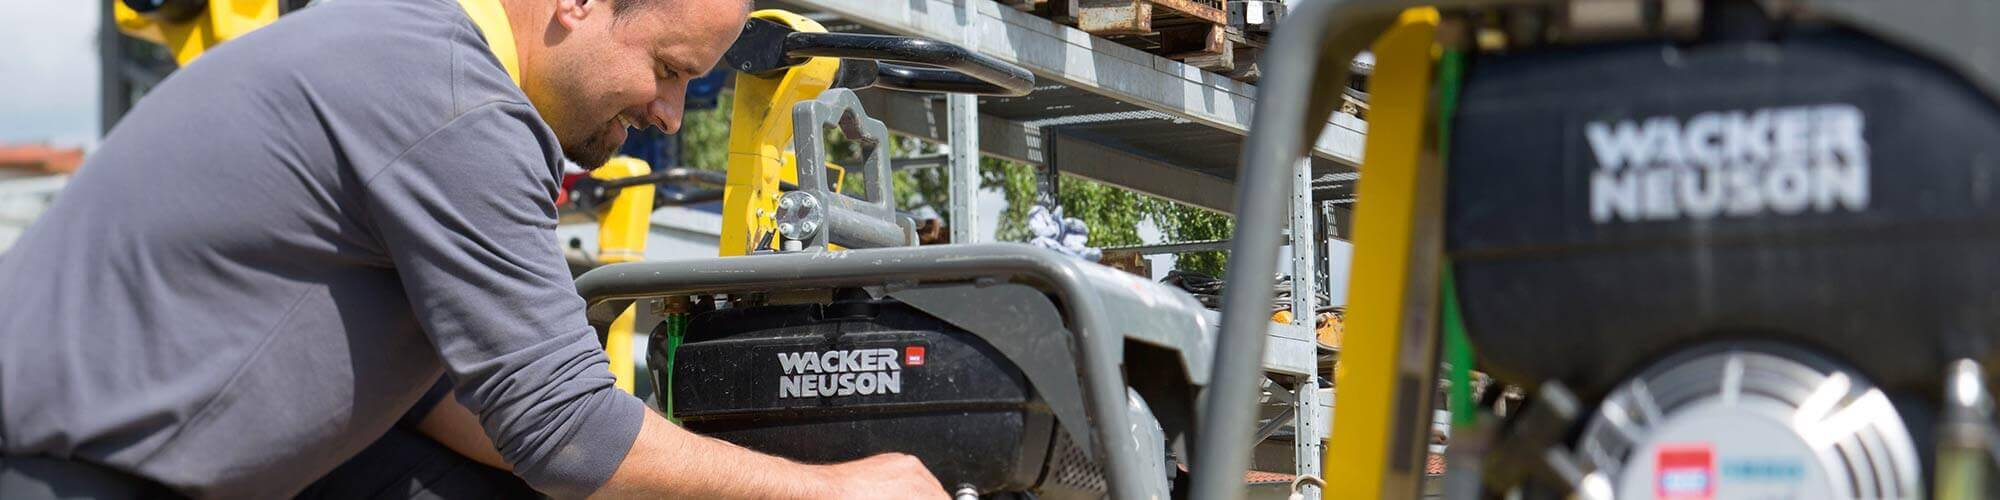 Keyvisual SAP Hybris Commerce bei Wacker Neuson